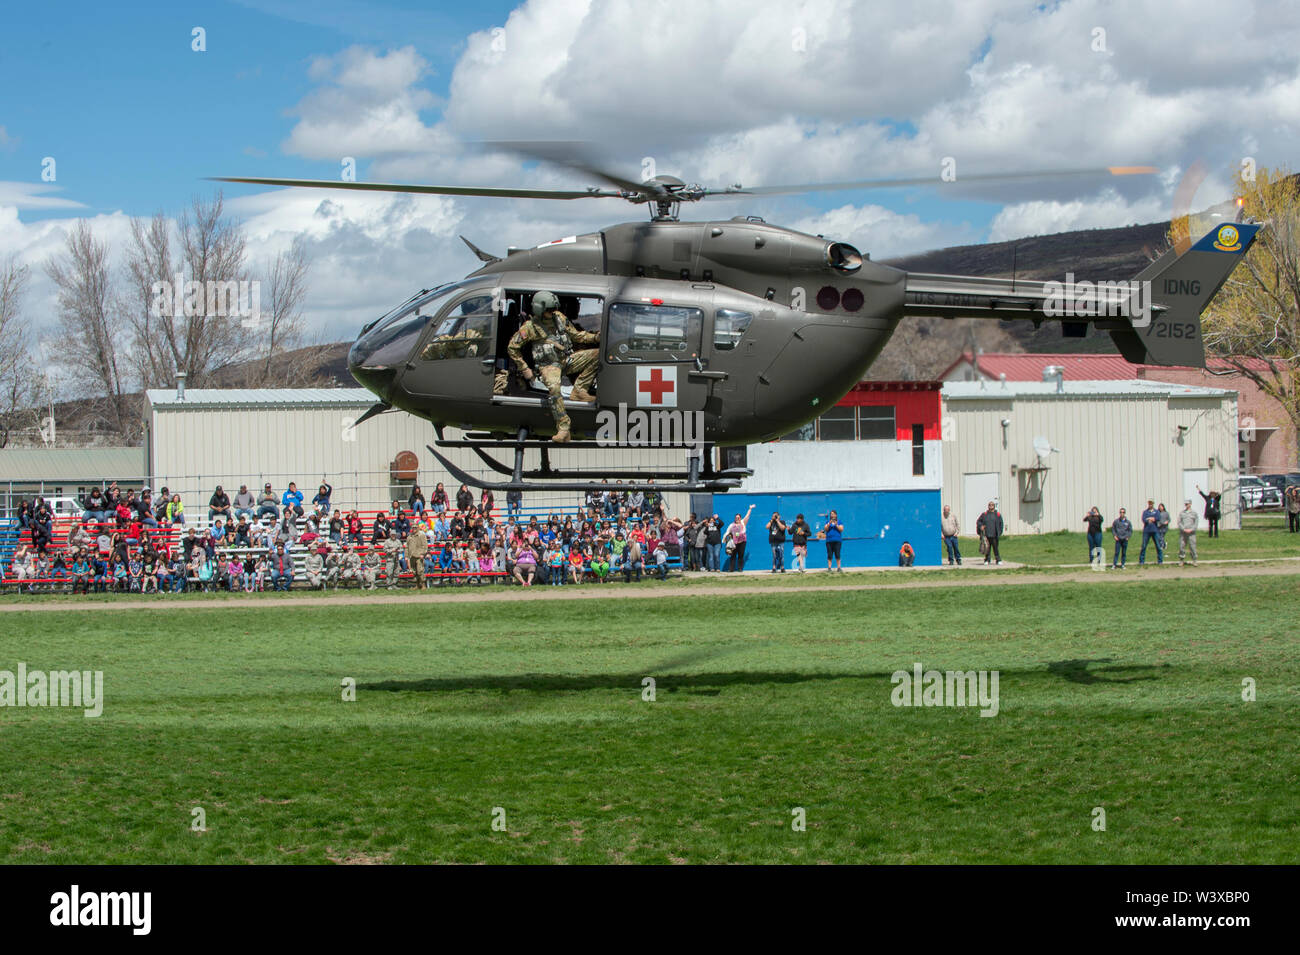 Students from the Owyhee Combined School on the Duck Valley Indian Reservation watch a UH-72 Lakota Helicopter take off from a field, flown by members of the Idaho National Guard, 24 April, 2019, Owyhee, Nevada. Members of the Idaho National Guard traveled to the Duck Valley Indian Reservation to conduct a health fair with the community. - Stock Image